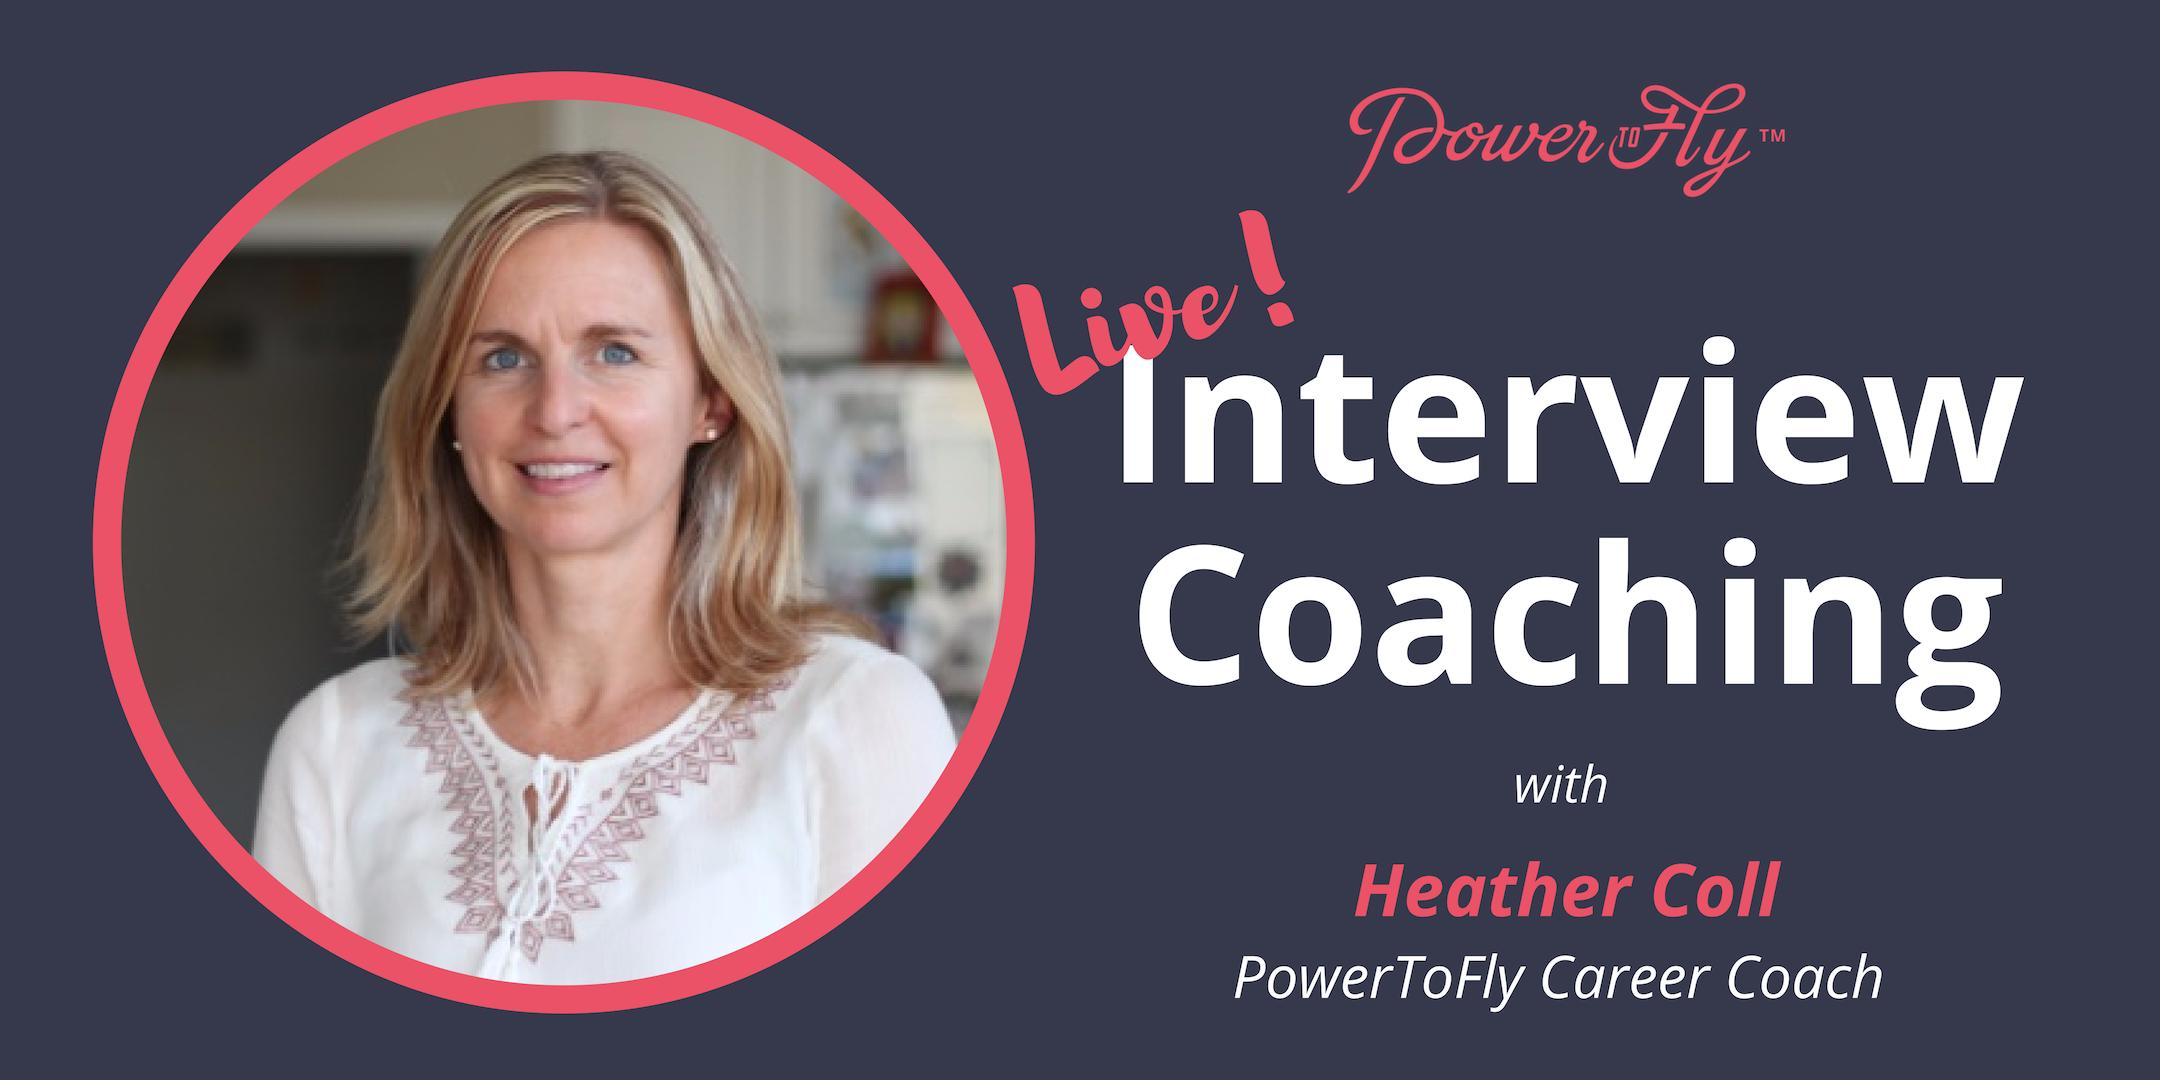 *LIVE* Interview Coaching With PowerToFly's Career Coach 5/2